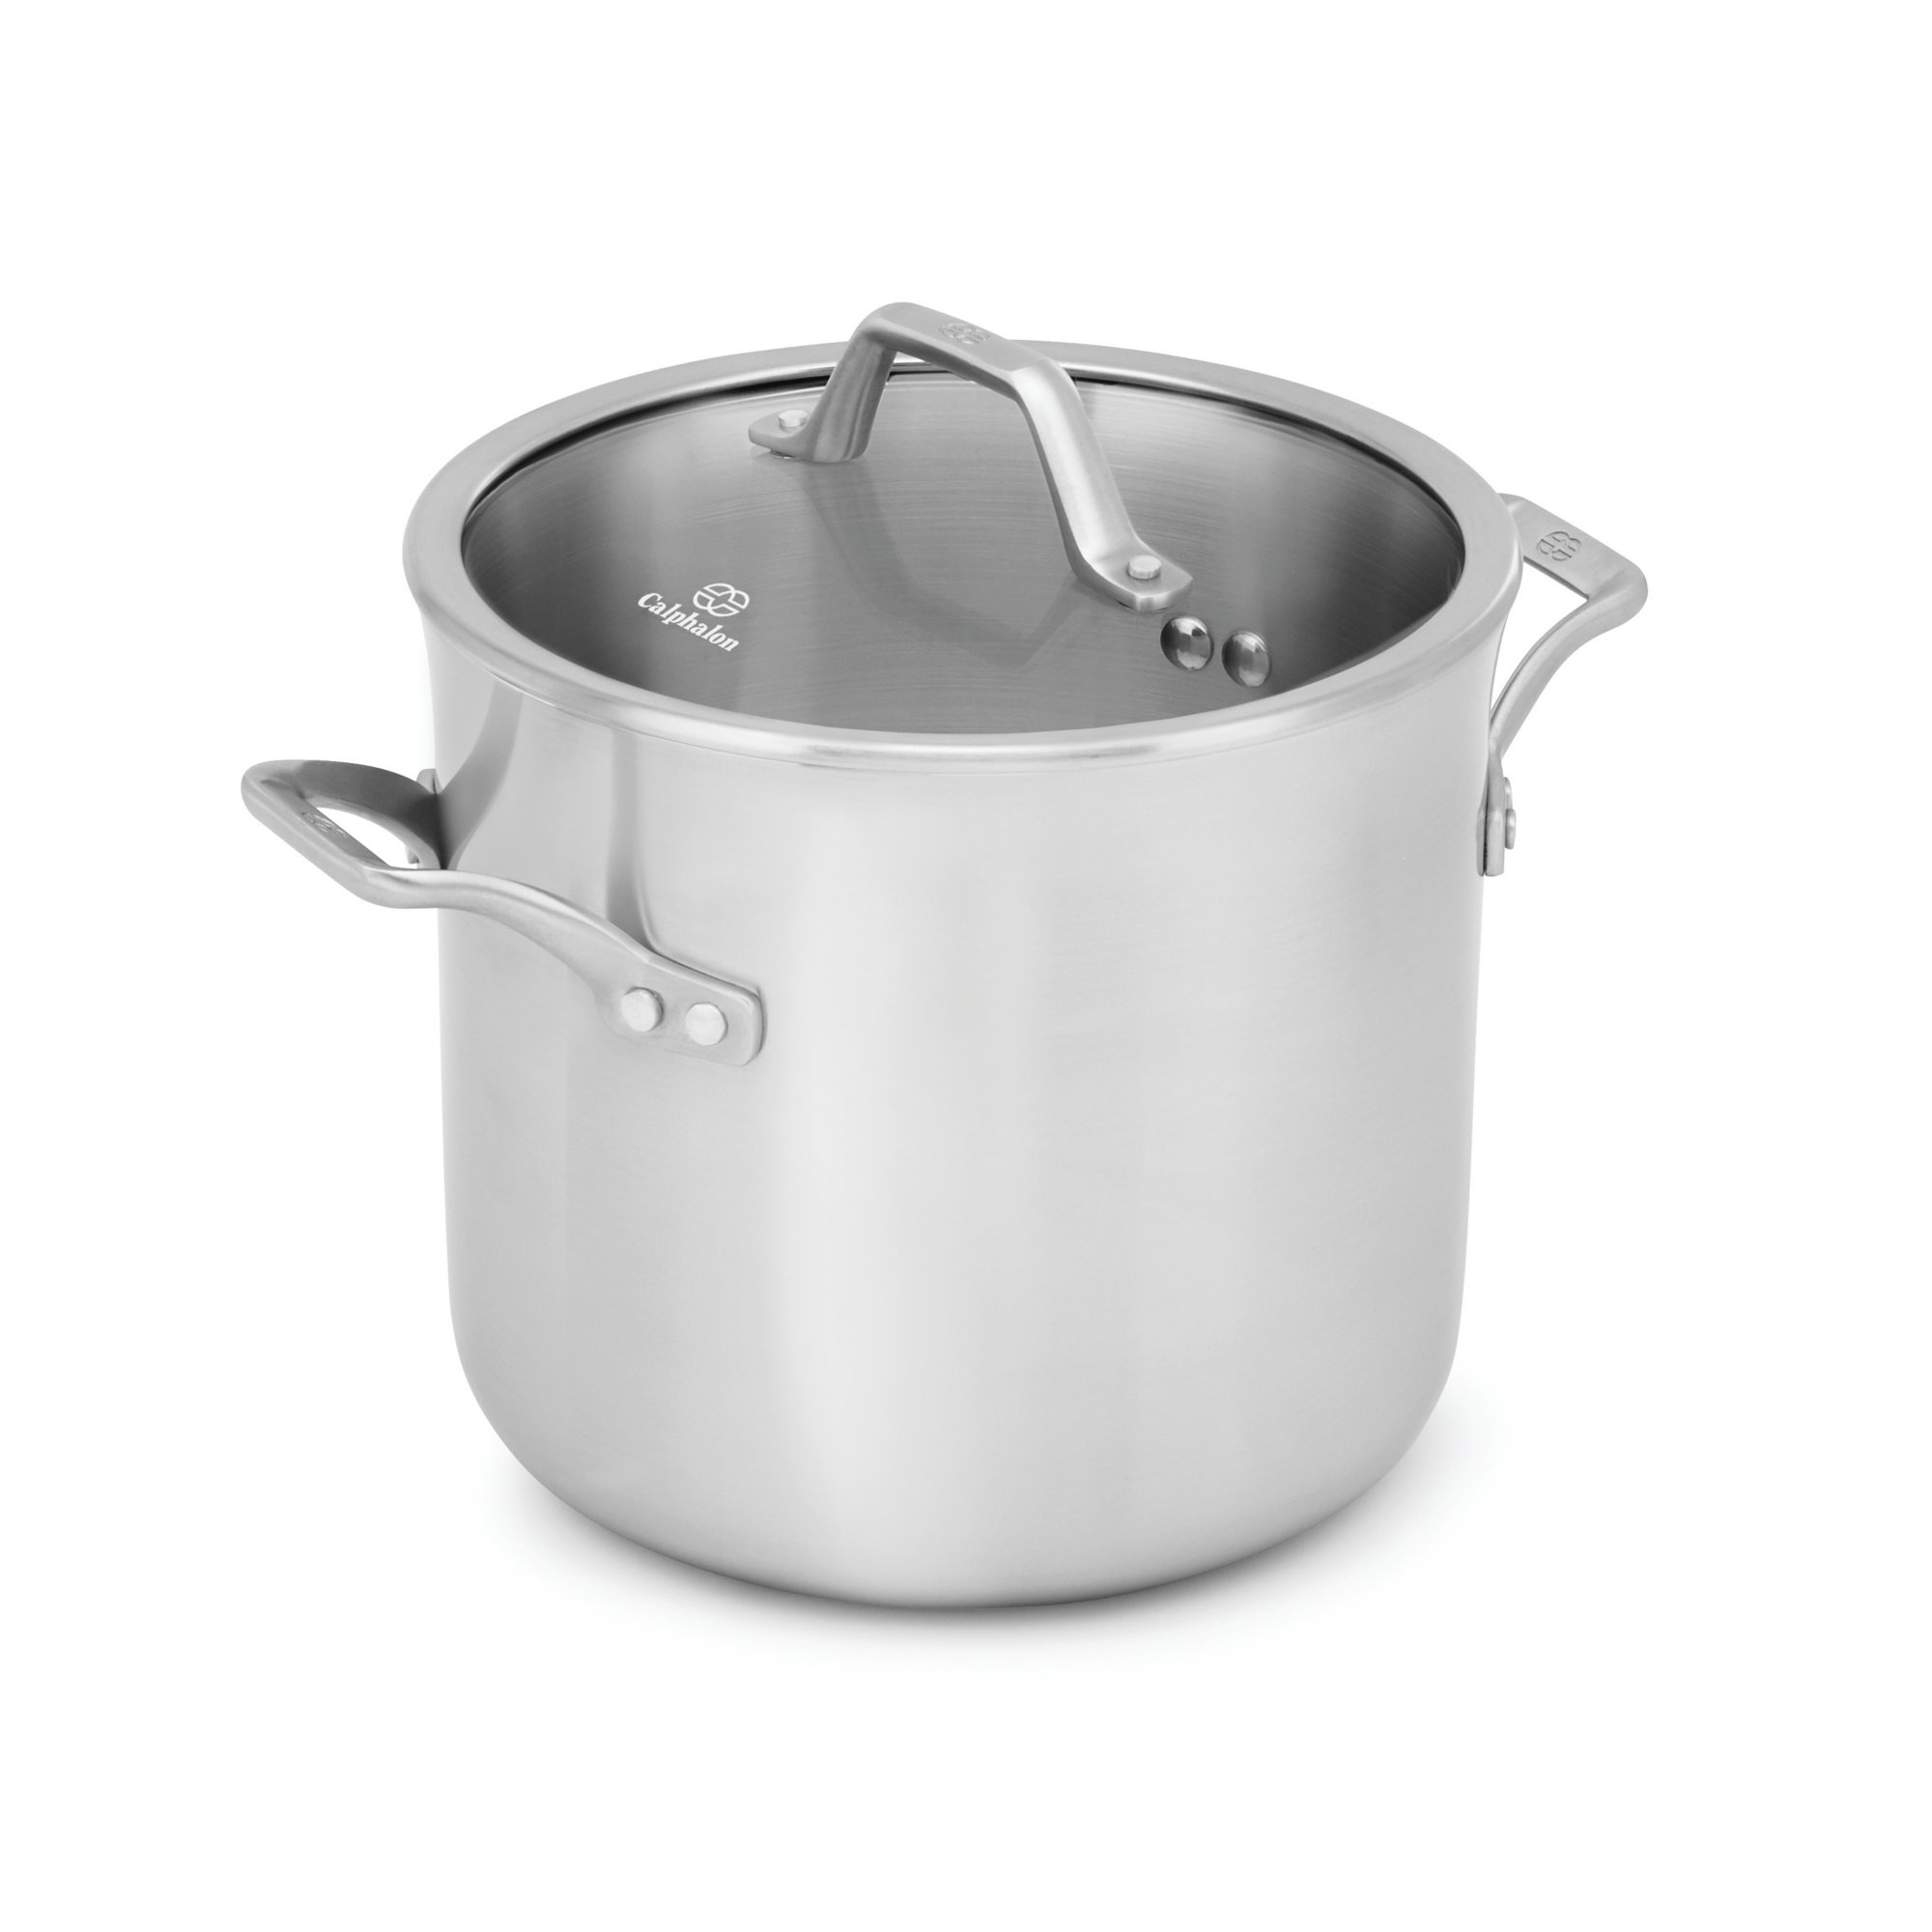 Calphalon Signature Stainless Steel Covered Stock Pot, 8 quart, Silver